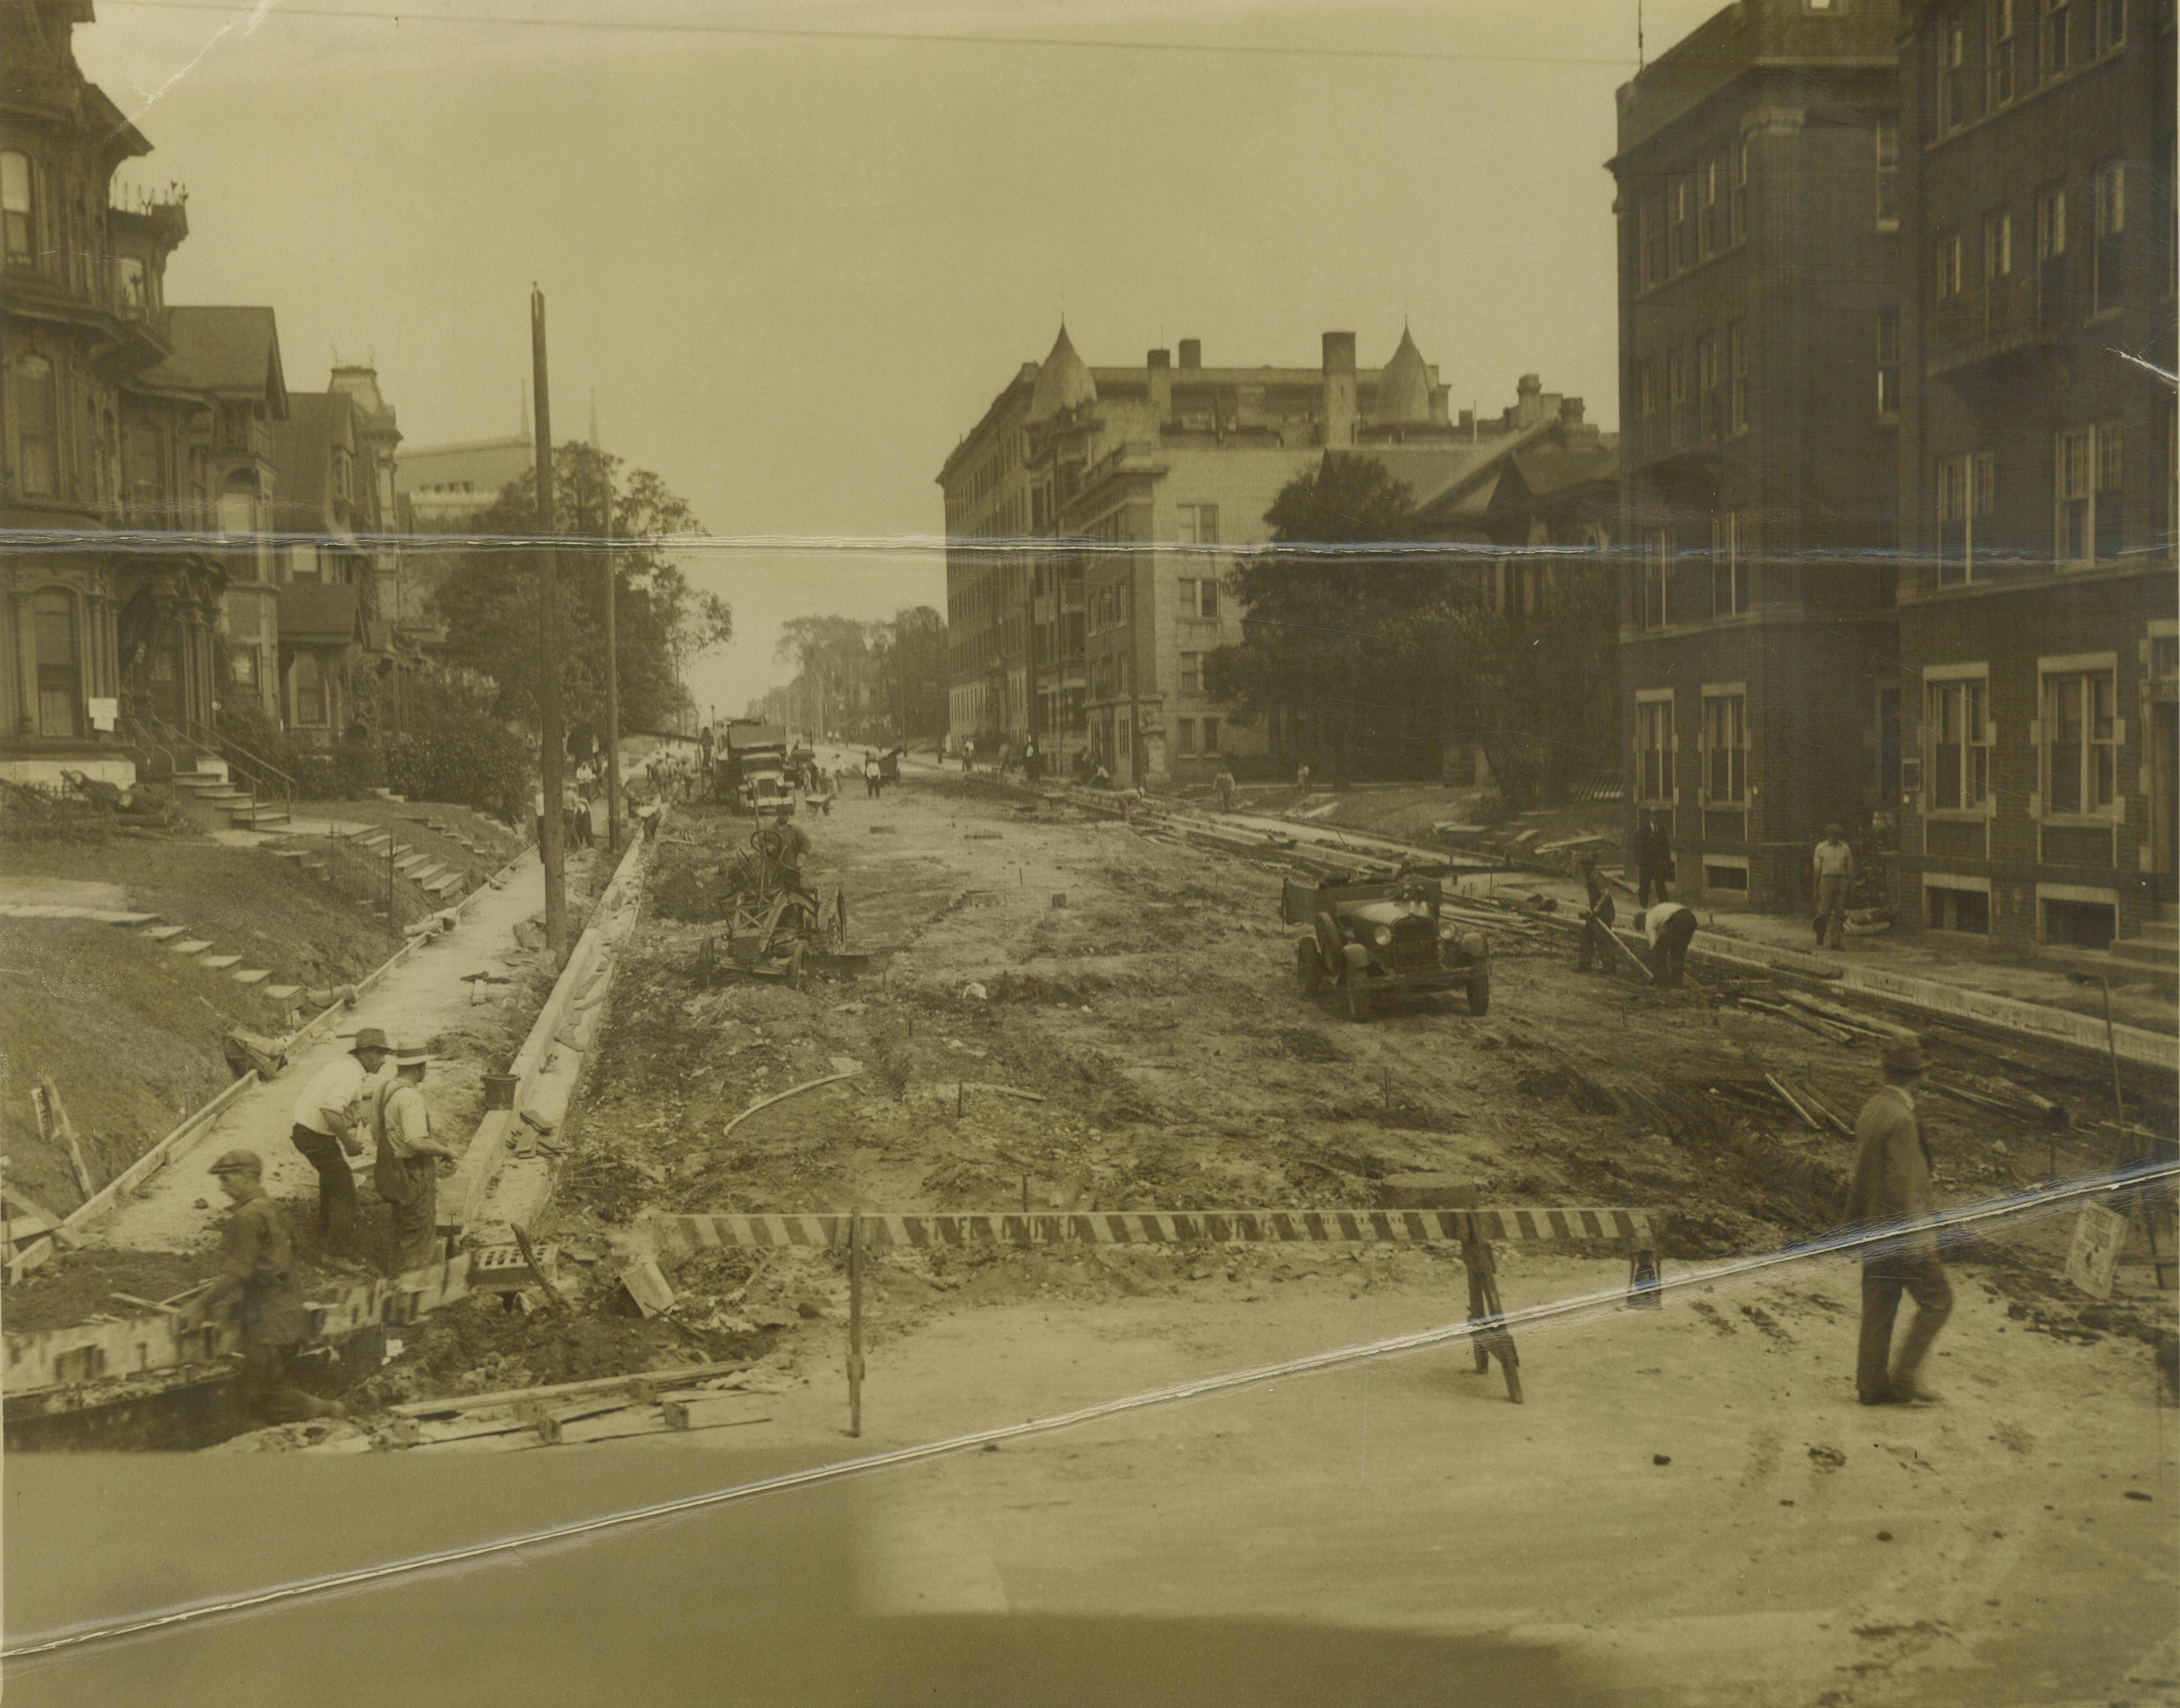 <table class=&quot;lightbox&quot;><tr><td colspan=2 class=&quot;lightbox-title&quot;>Milwaukee Road Construction</td></tr><tr><td colspan=2 class=&quot;lightbox-caption&quot;>The roadbed on East Juneau Avenue under construction in the 1920s.</td></tr><tr><td colspan=2 class=&quot;lightbox-spacer&quot;></td></tr><tr class=&quot;lightbox-detail&quot;><td class=&quot;cell-title&quot;>Source: </td><td class=&quot;cell-value&quot;>From the Historic Photo Collection of the Milwaukee Public Library. Reprinted with permission. <br /><a href=&quot;http://content.mpl.org/cdm/singleitem/collection/HstoricPho/id/6748/rec/16&quot; target=&quot;_blank&quot;>Milwaukee Public Library</a></td></tr><tr class=&quot;filler-row&quot;><td colspan=2>&nbsp;</td></tr></table>